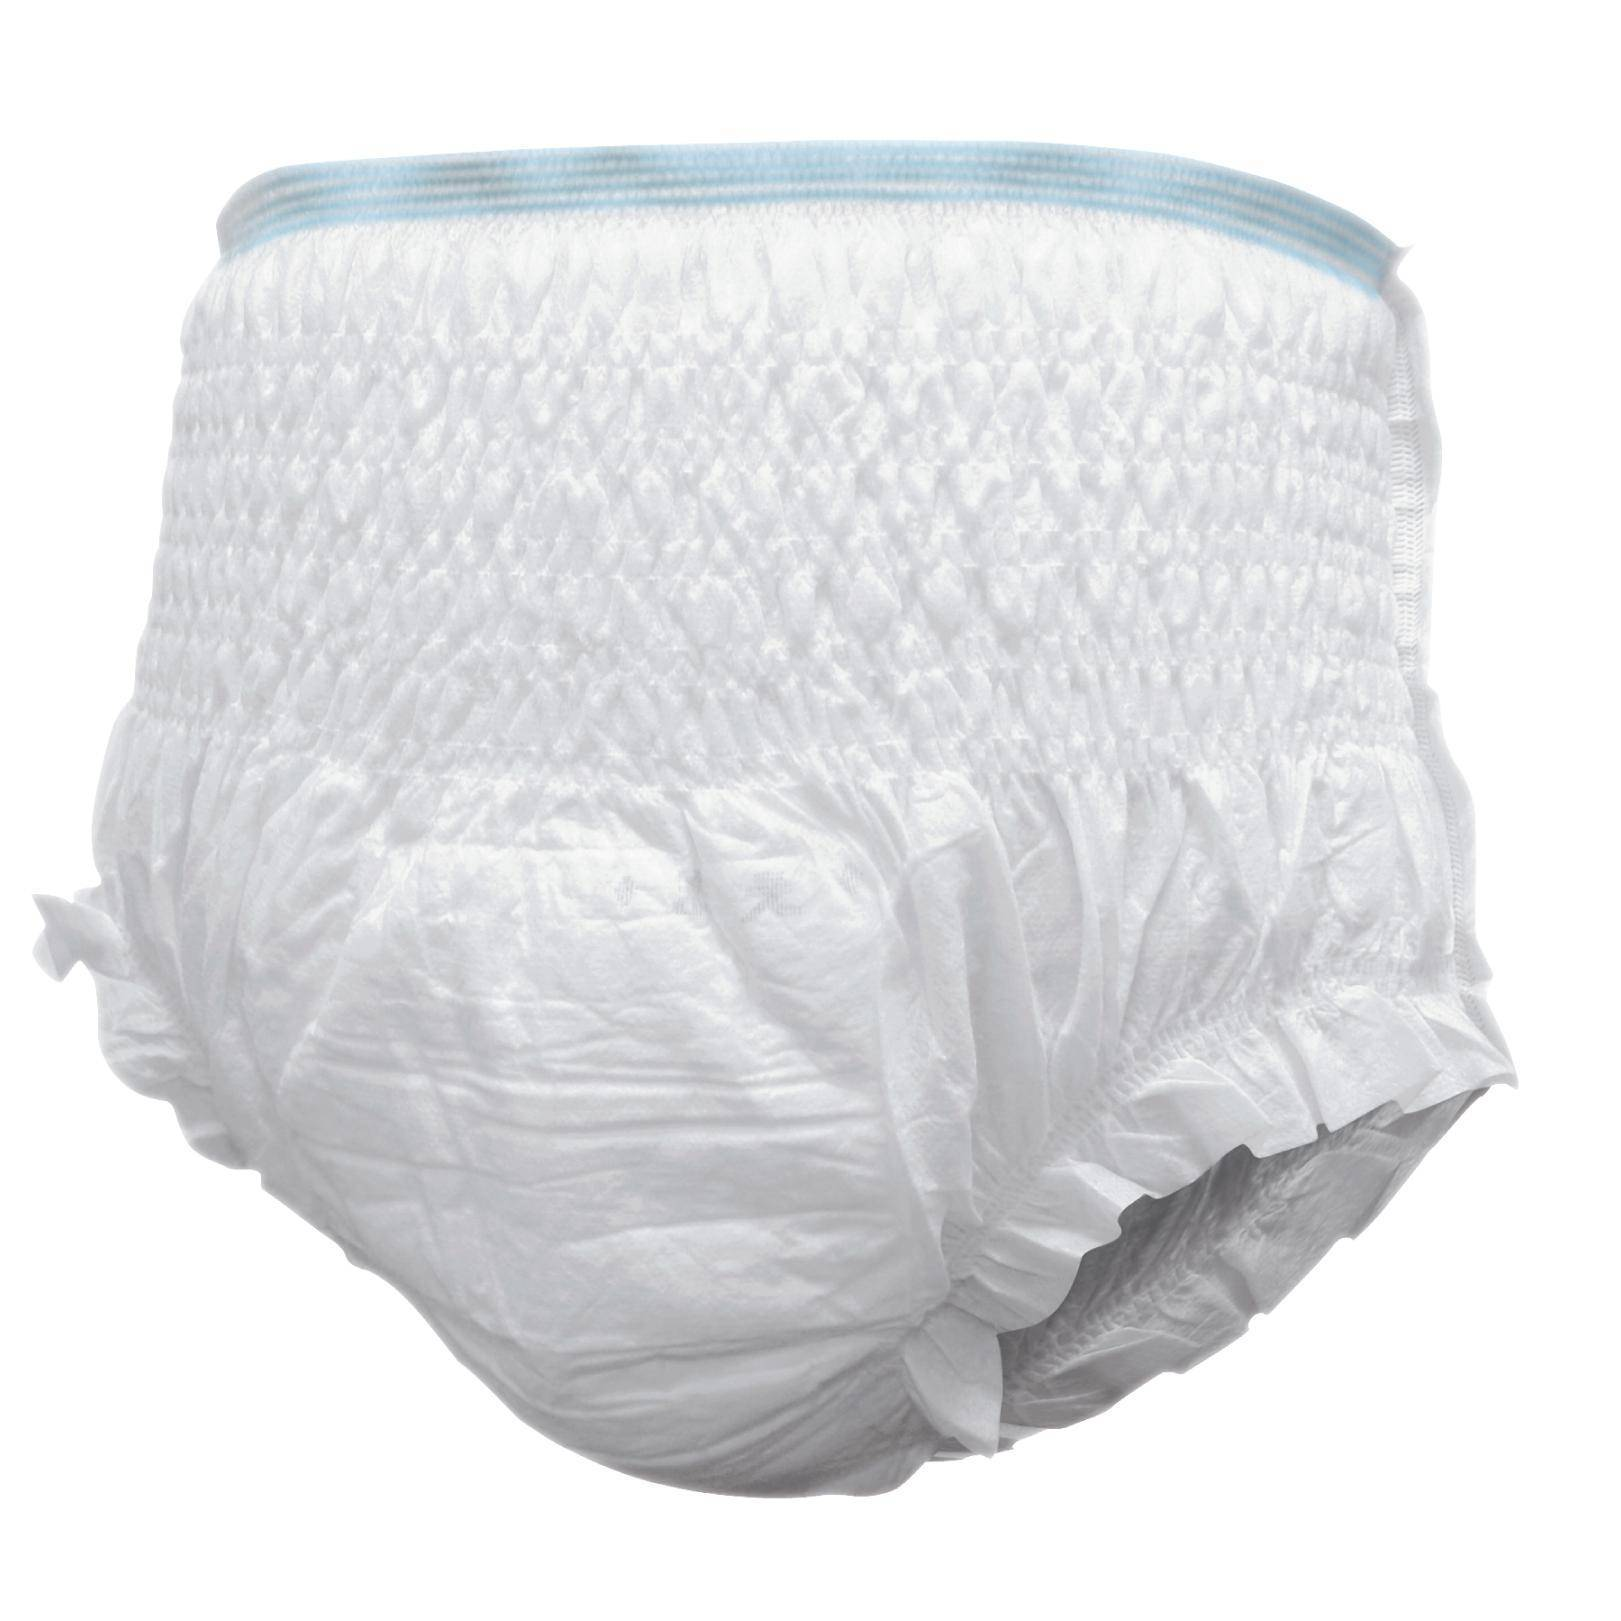 diaposable adult diapers